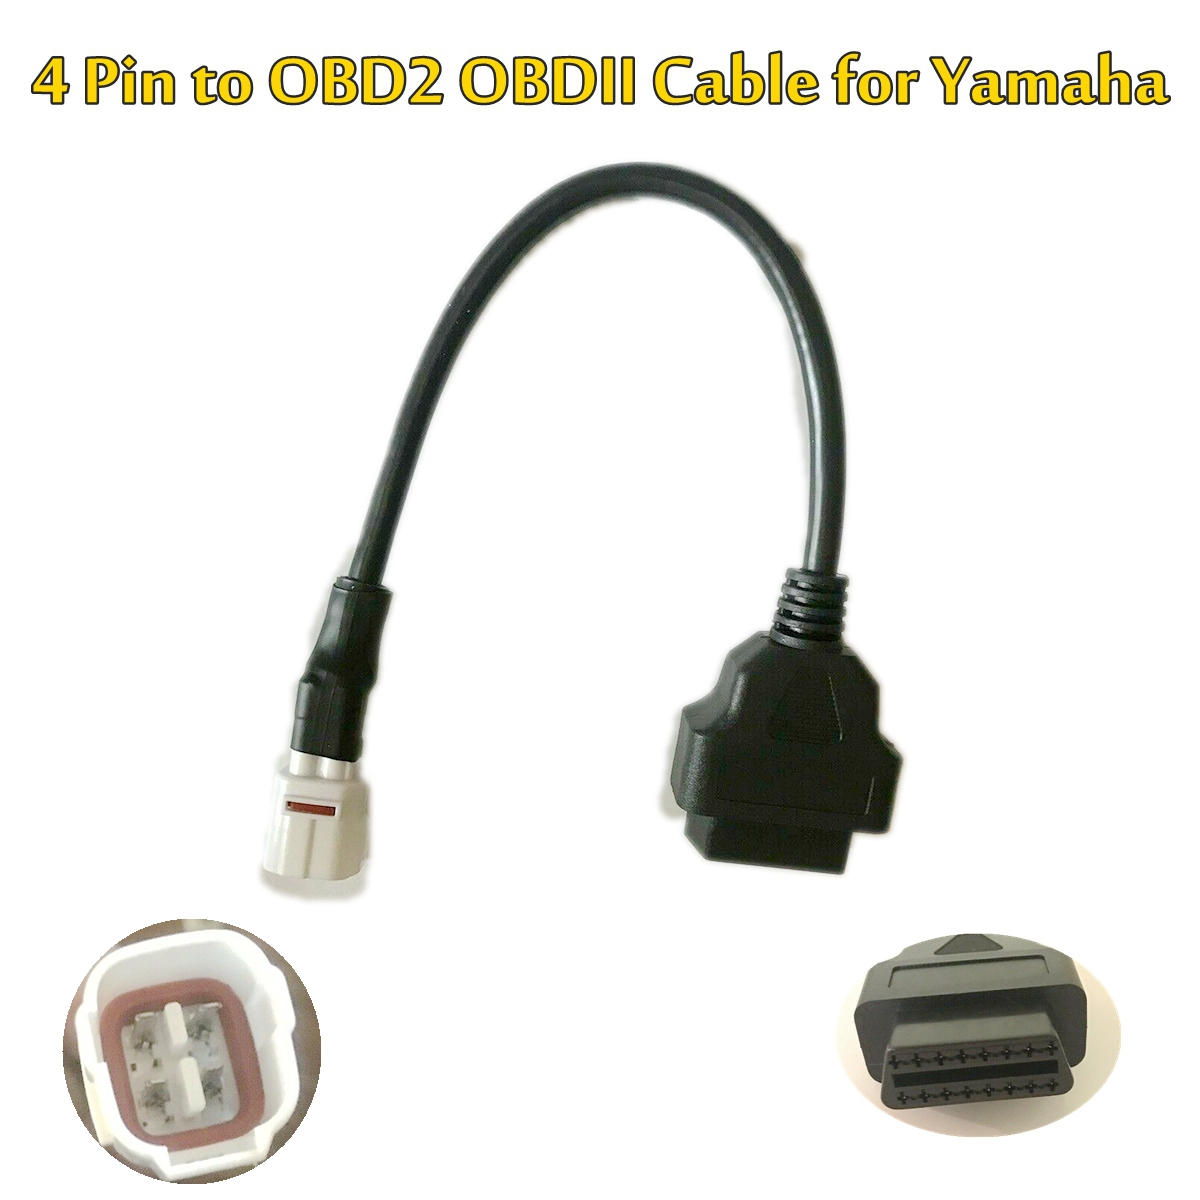 NEW Diagnostic 4 Pin To OBD2 OBDII Cable Harness Adapter For Yamaha FJ09, FZ09, MT09, FZ-10, MT-10, XSR900, R6, R1, 900/GT ETC